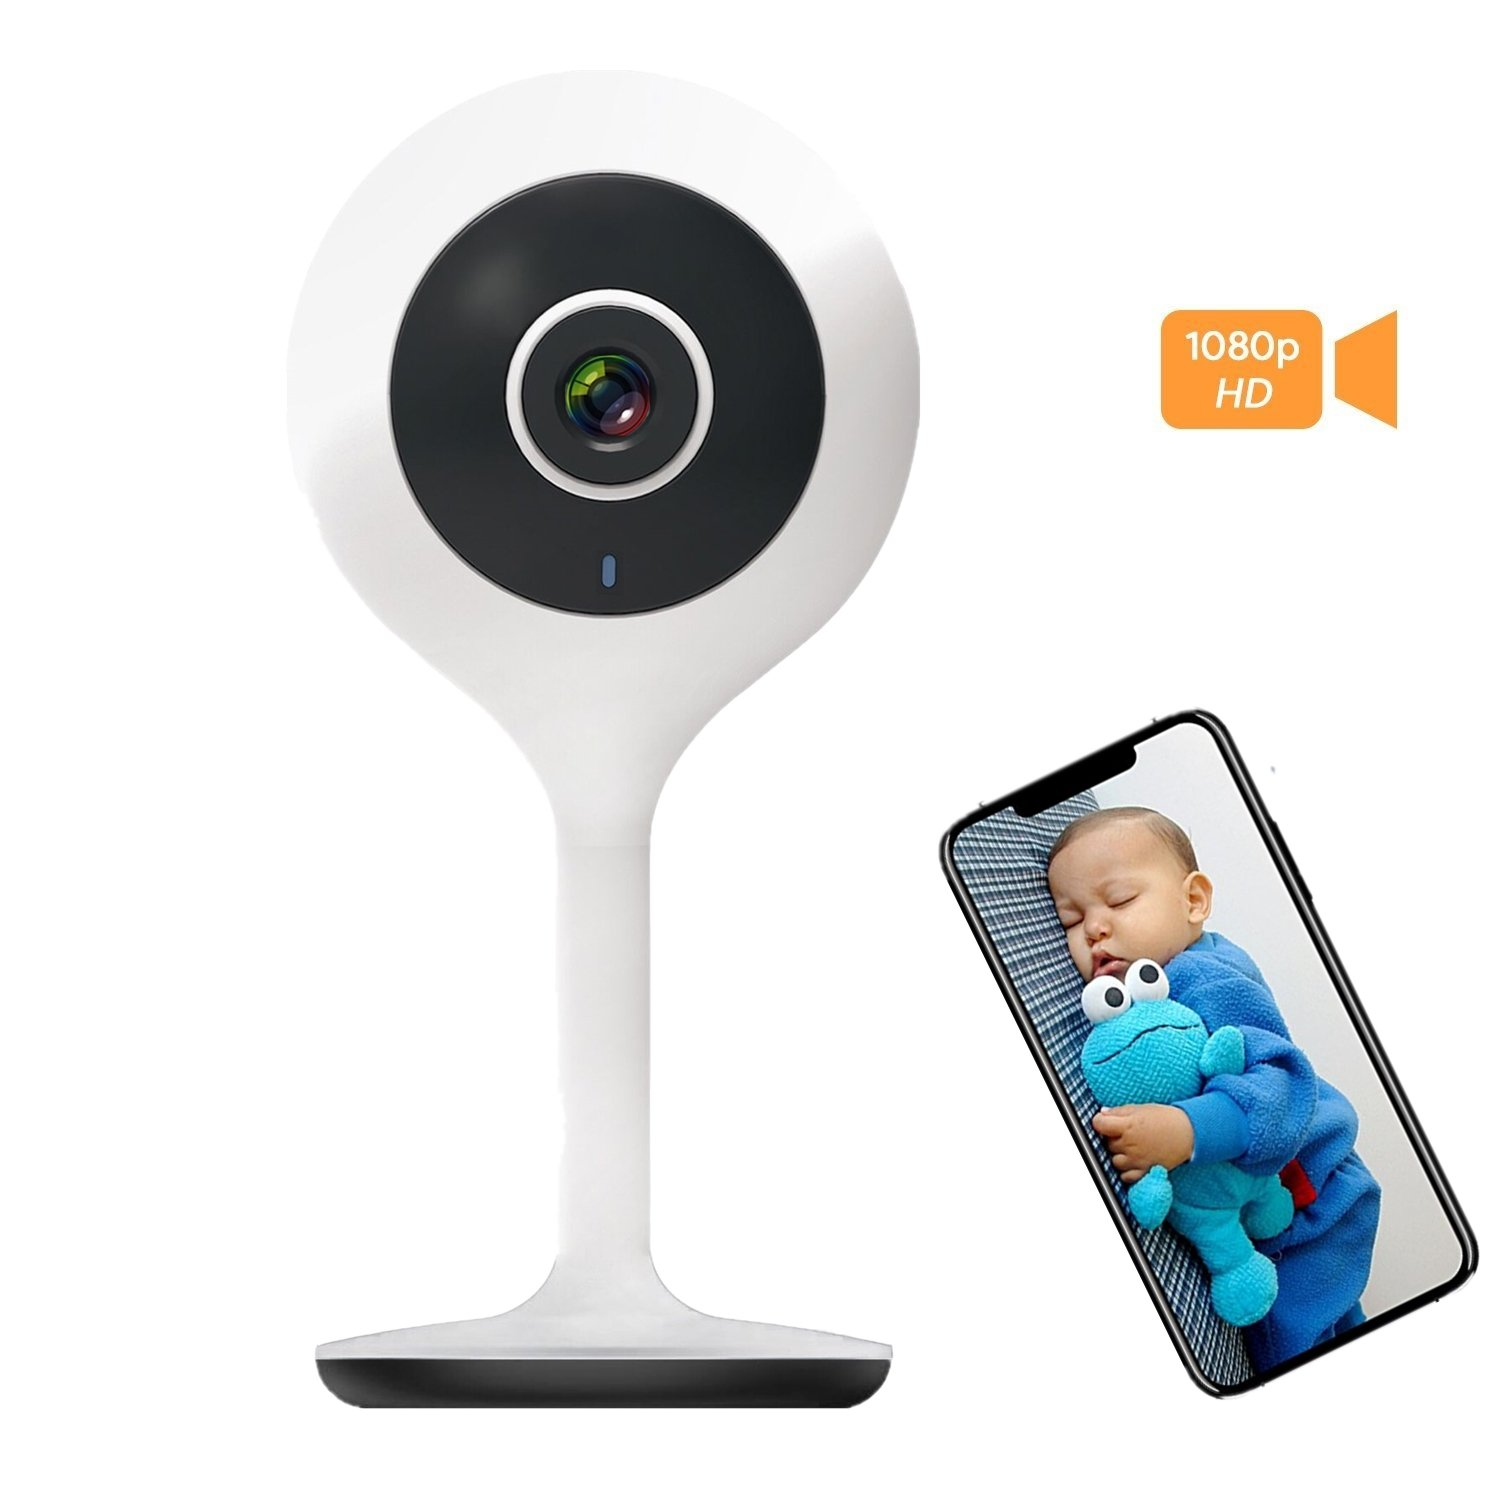 Wireless Wifi Security Camera, Zeetopin Mini 1080p HD WIFI Smart Home Baby Camera with Night Vision, Motion Detection Playback, 2-Way Audio for Baby/Elder/Pet